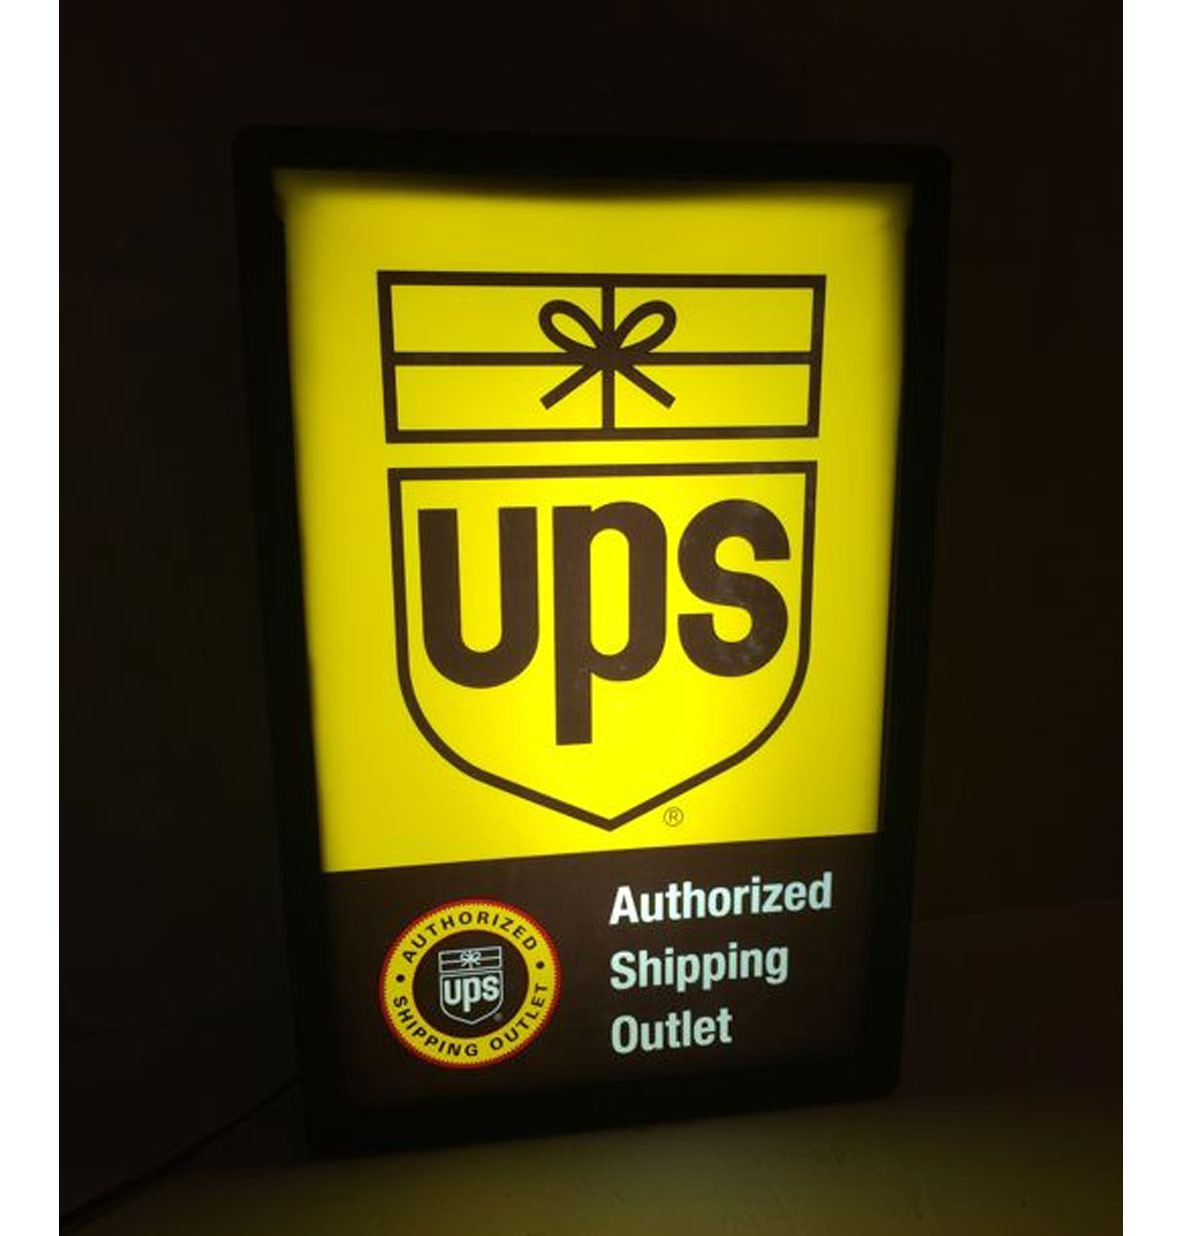 UPS Authorized Shipping Outlet Lichtbak